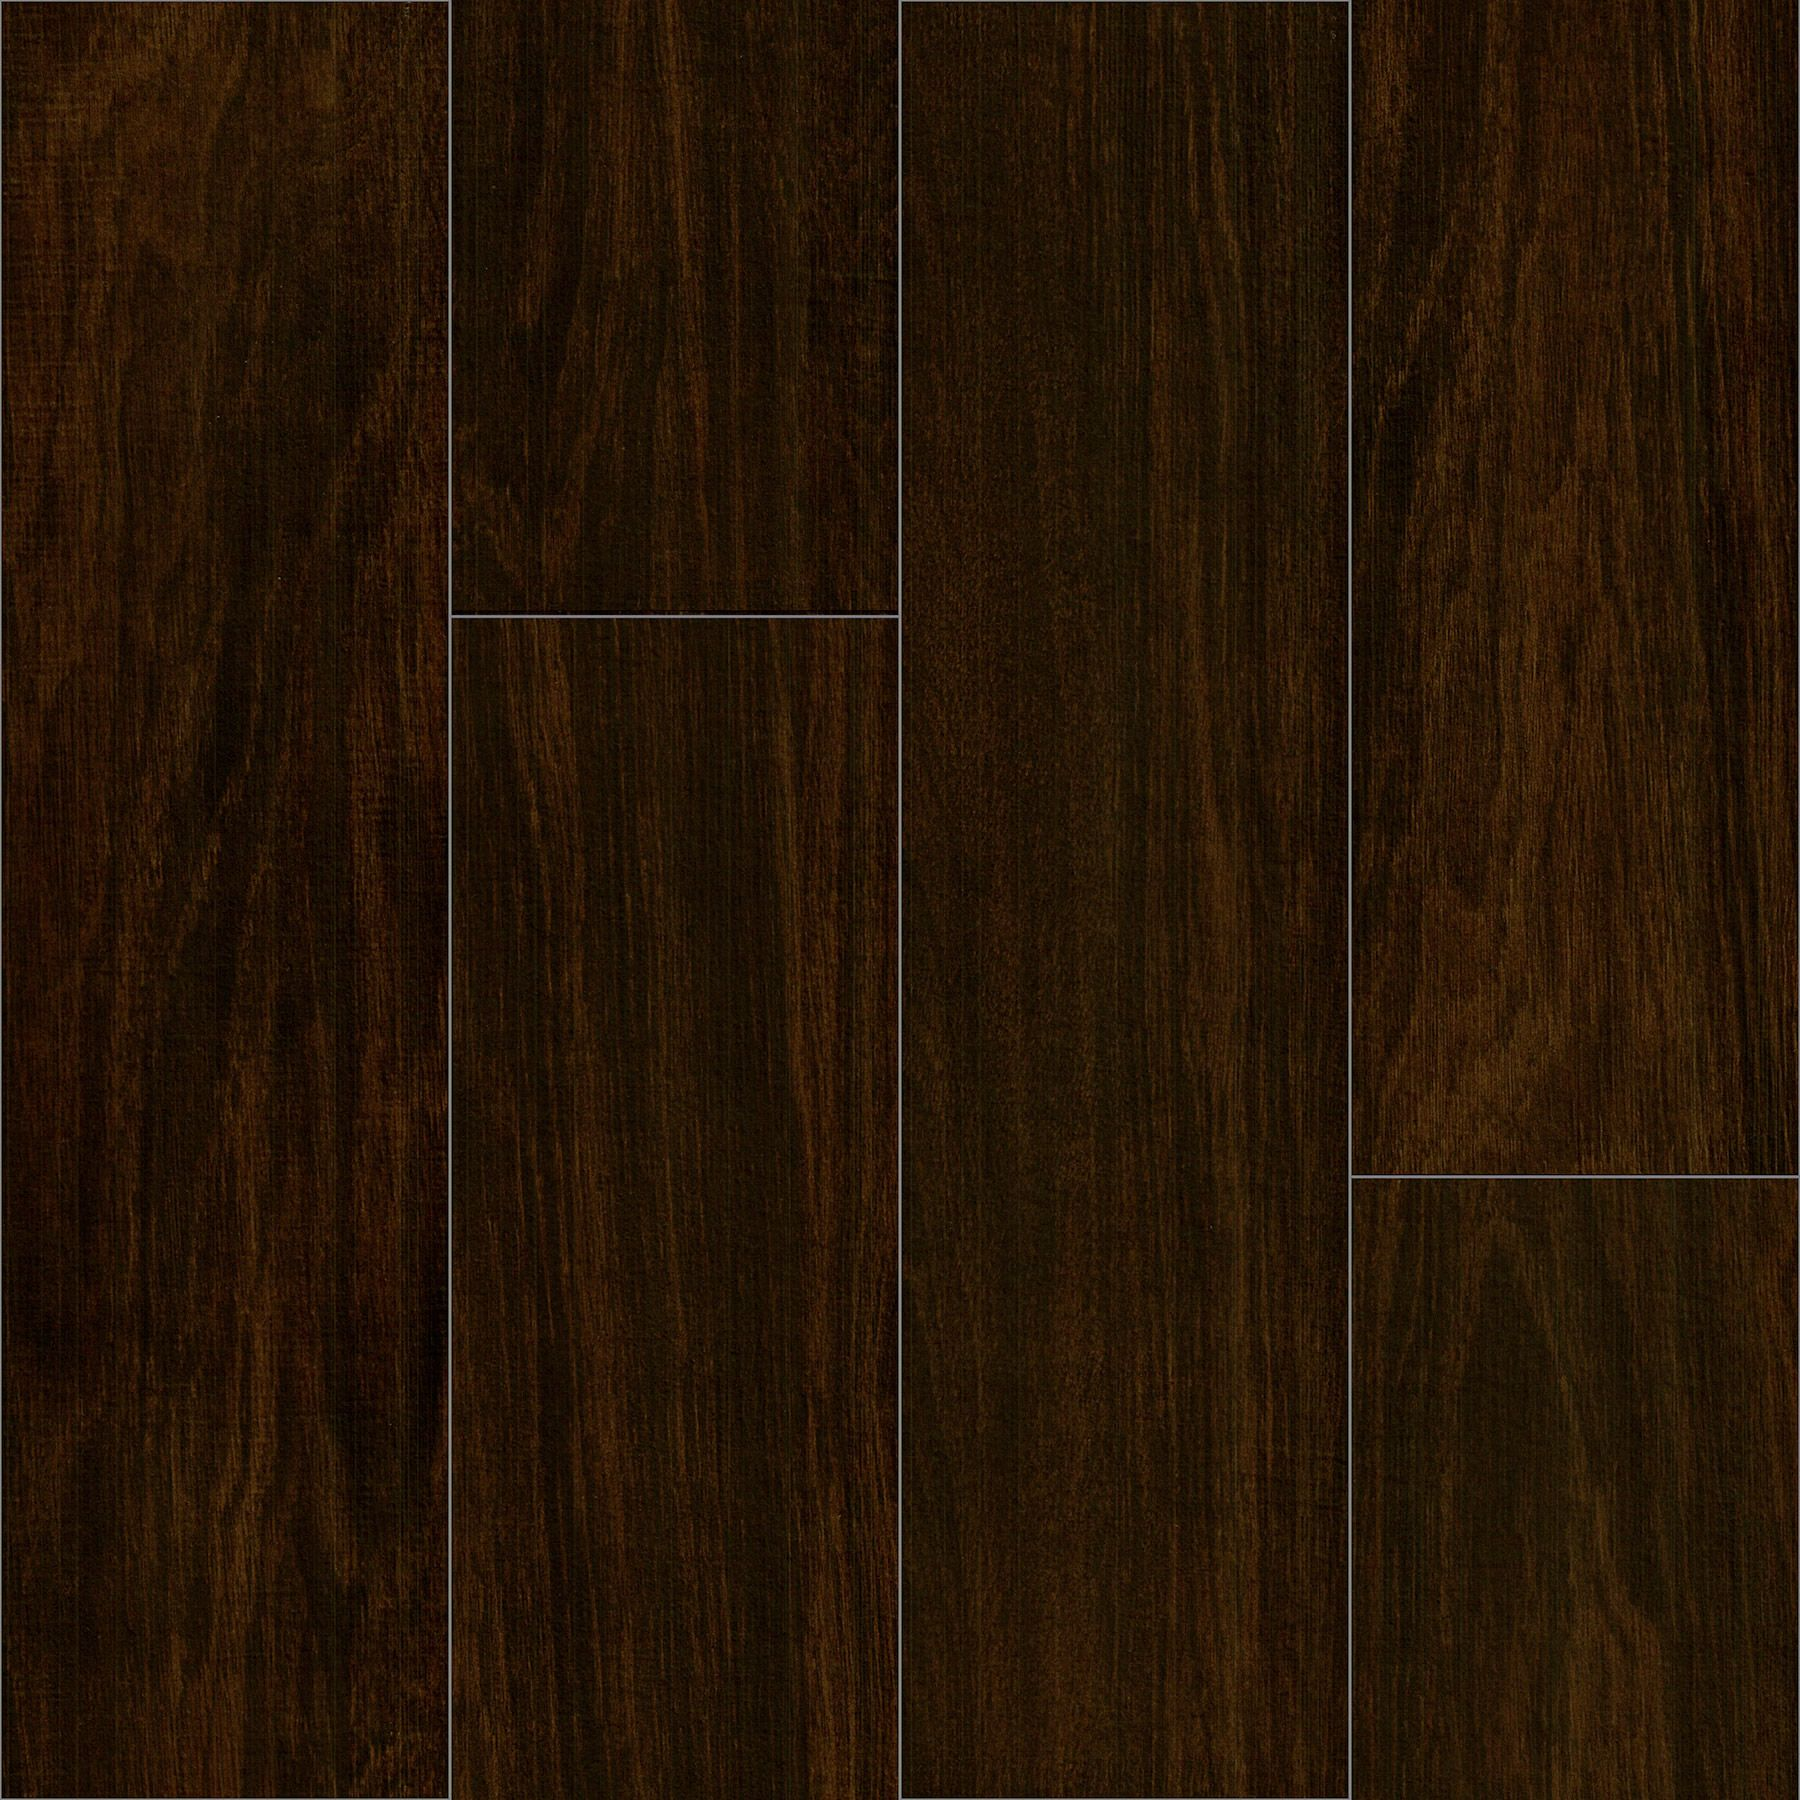 Florida tile walnut 6 x 24 wood grain porcelain tile tile florida tile walnut 6 x 24 wood grain porcelain dailygadgetfo Image collections